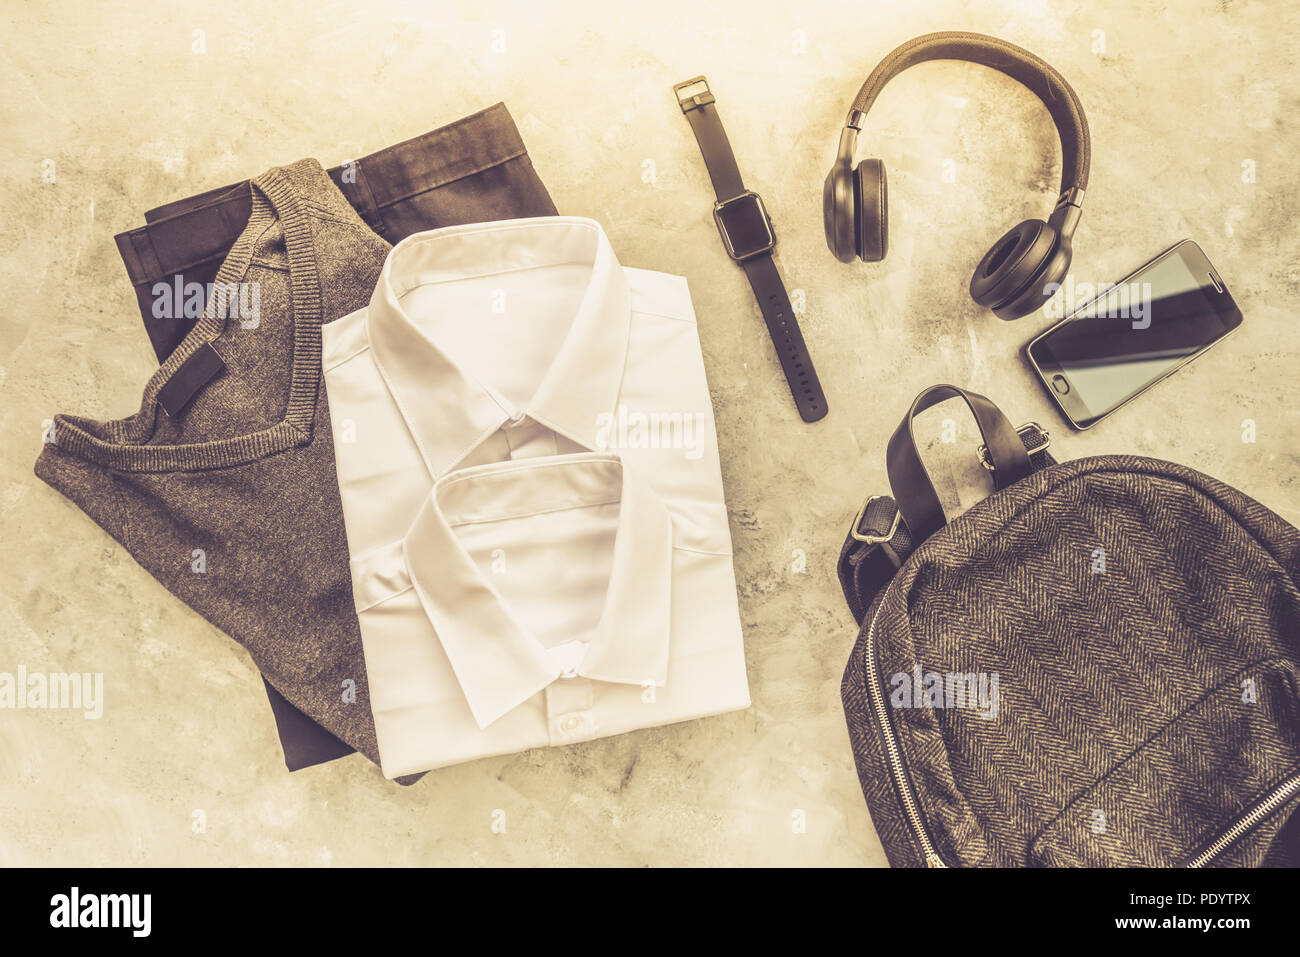 Back to school concept, backpack with school uniform such as white shirts and trousers, as well as electronic devices such as smart watch, mobile and  - Stock Image